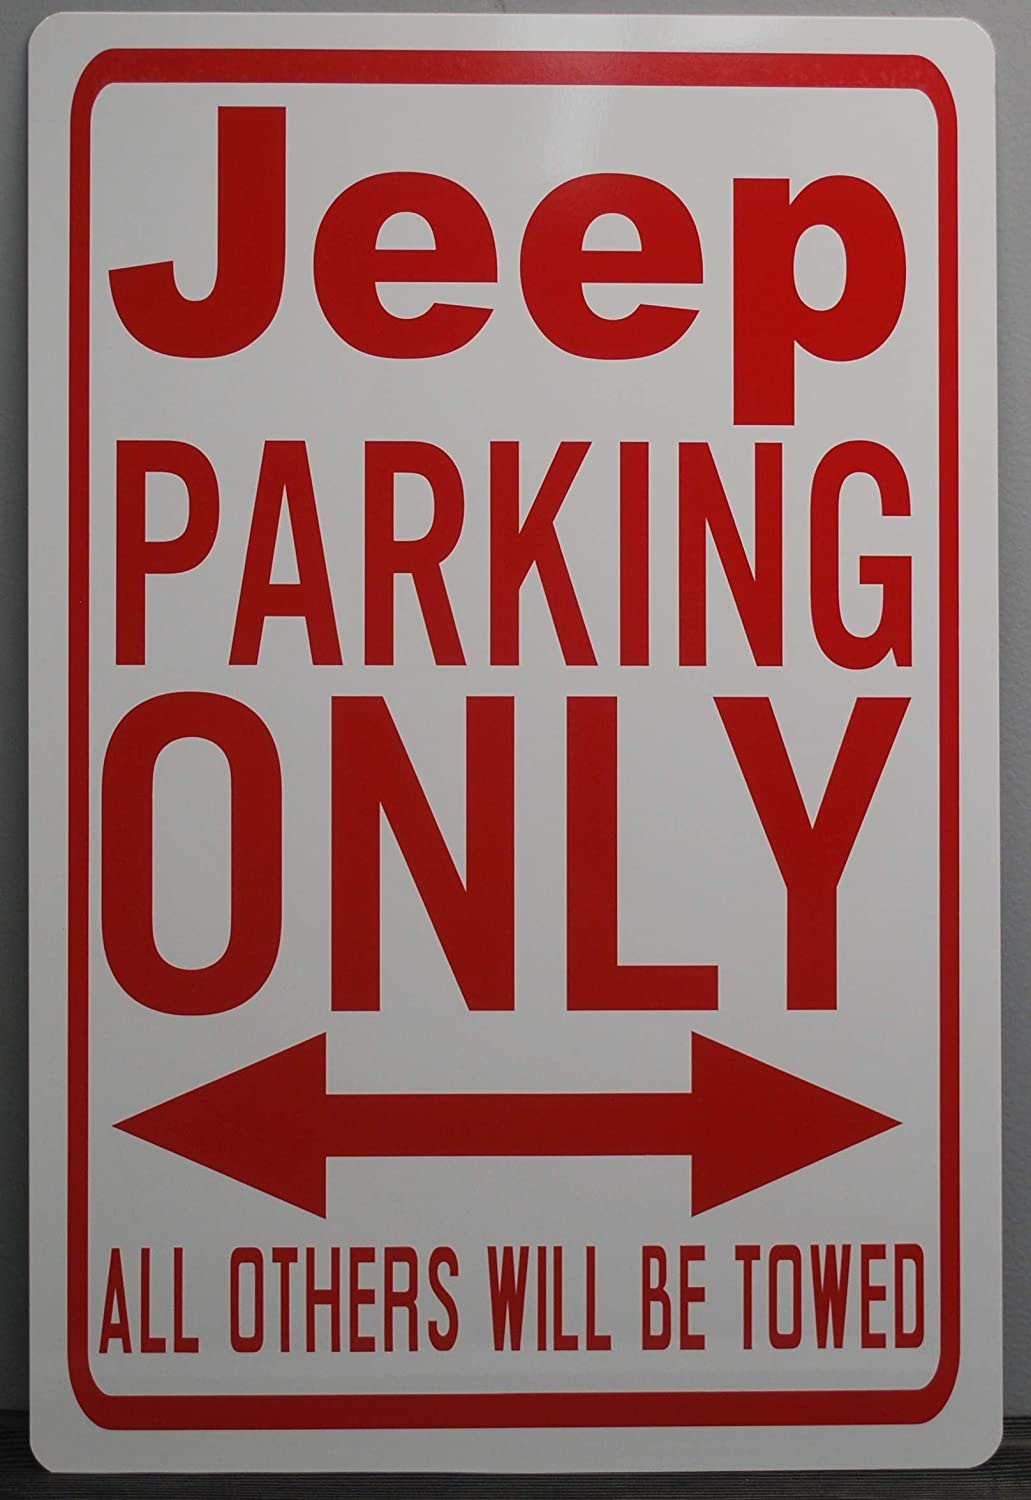 METAL STREET SIGN JEEP PARKING ONLY 12X18 FITS JEEP WILLYS WRANGLER RUBICON CHEROKEE WAGGONEER GLADIATOR CJ MAIL TRUCK 4X4 OFF ROAD ROCK BAR GARAGE MAN CAVE RESTAURANT SHOP HOME OFFICE WALL ART GIFT